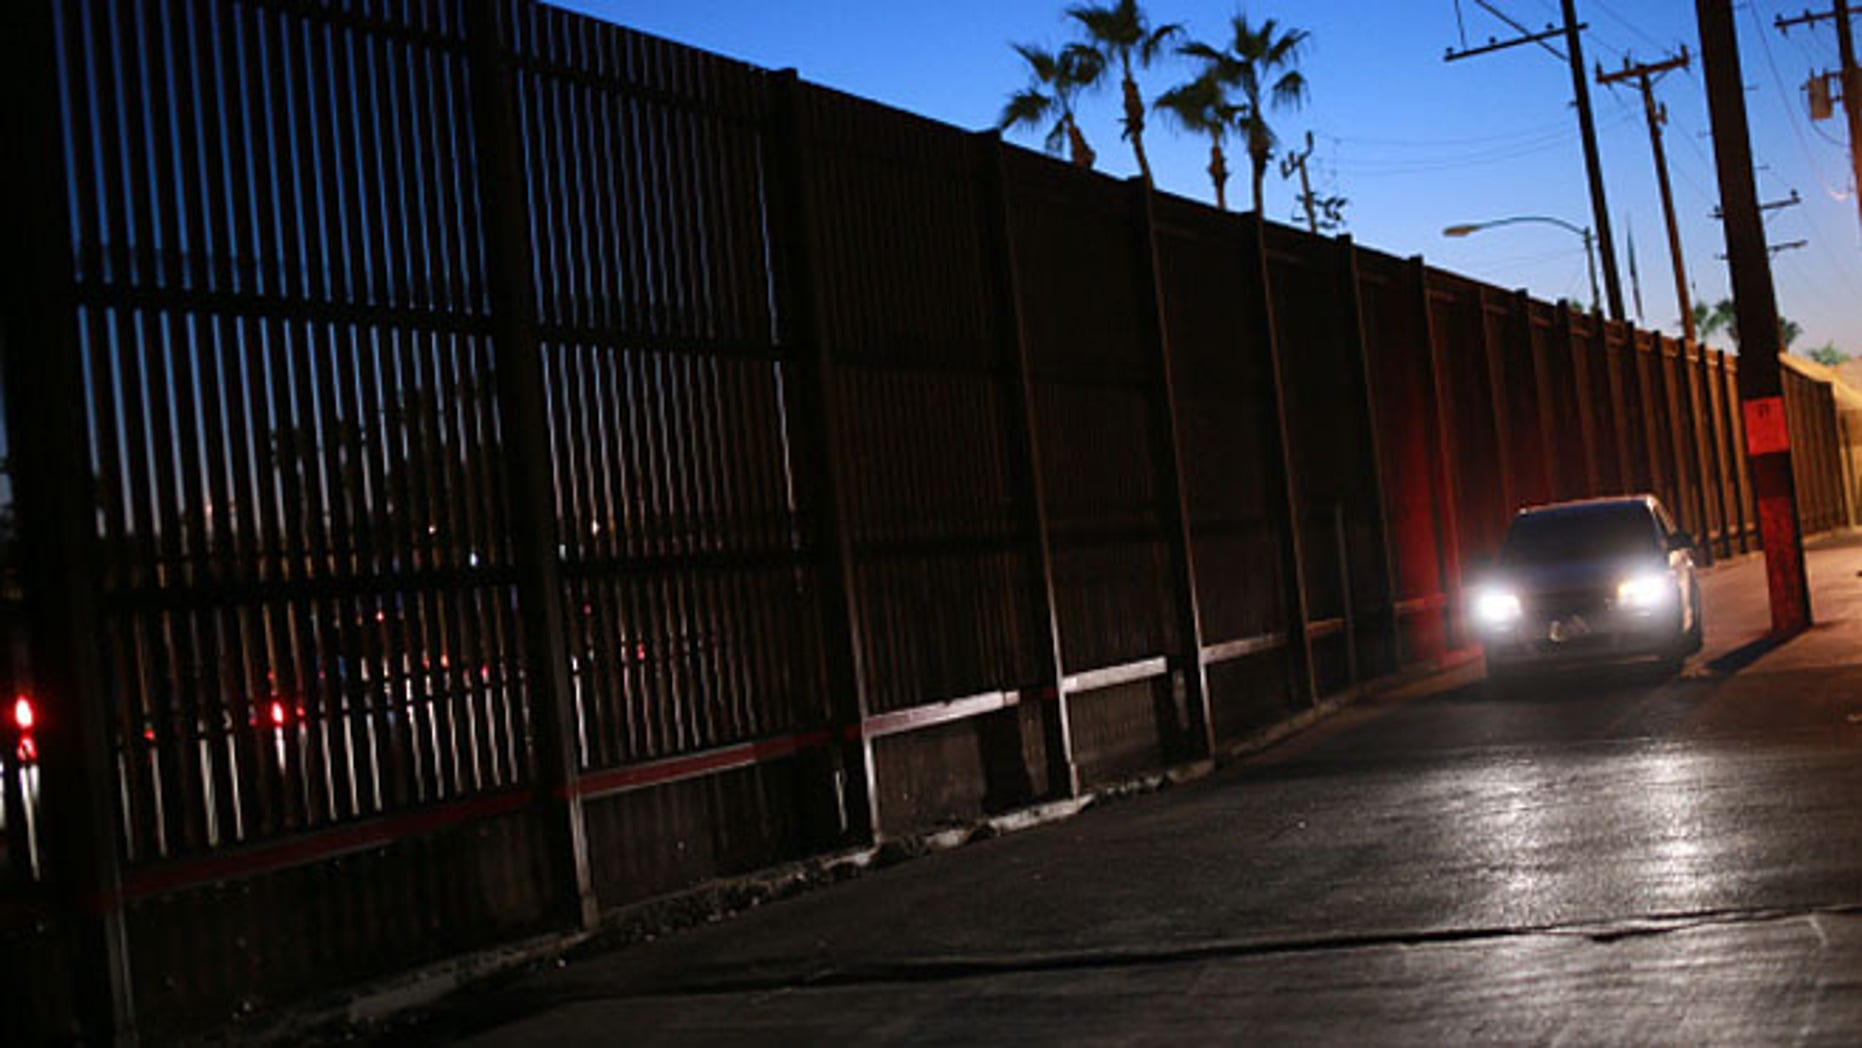 CALEXICO, CA - NOVEMBER 19:  A car drives along the U.S. - Mexico border wall on November 19, 2014 in Calexico, California. U.S. President Barack Obama plans to announce executive action on immigration reform Thursday Evening.  As many as five million undocumented immigrants could, on a temporary basis, be granted work permits and exempted from deporation. (Photo by Sandy Huffaker/Getty Images)